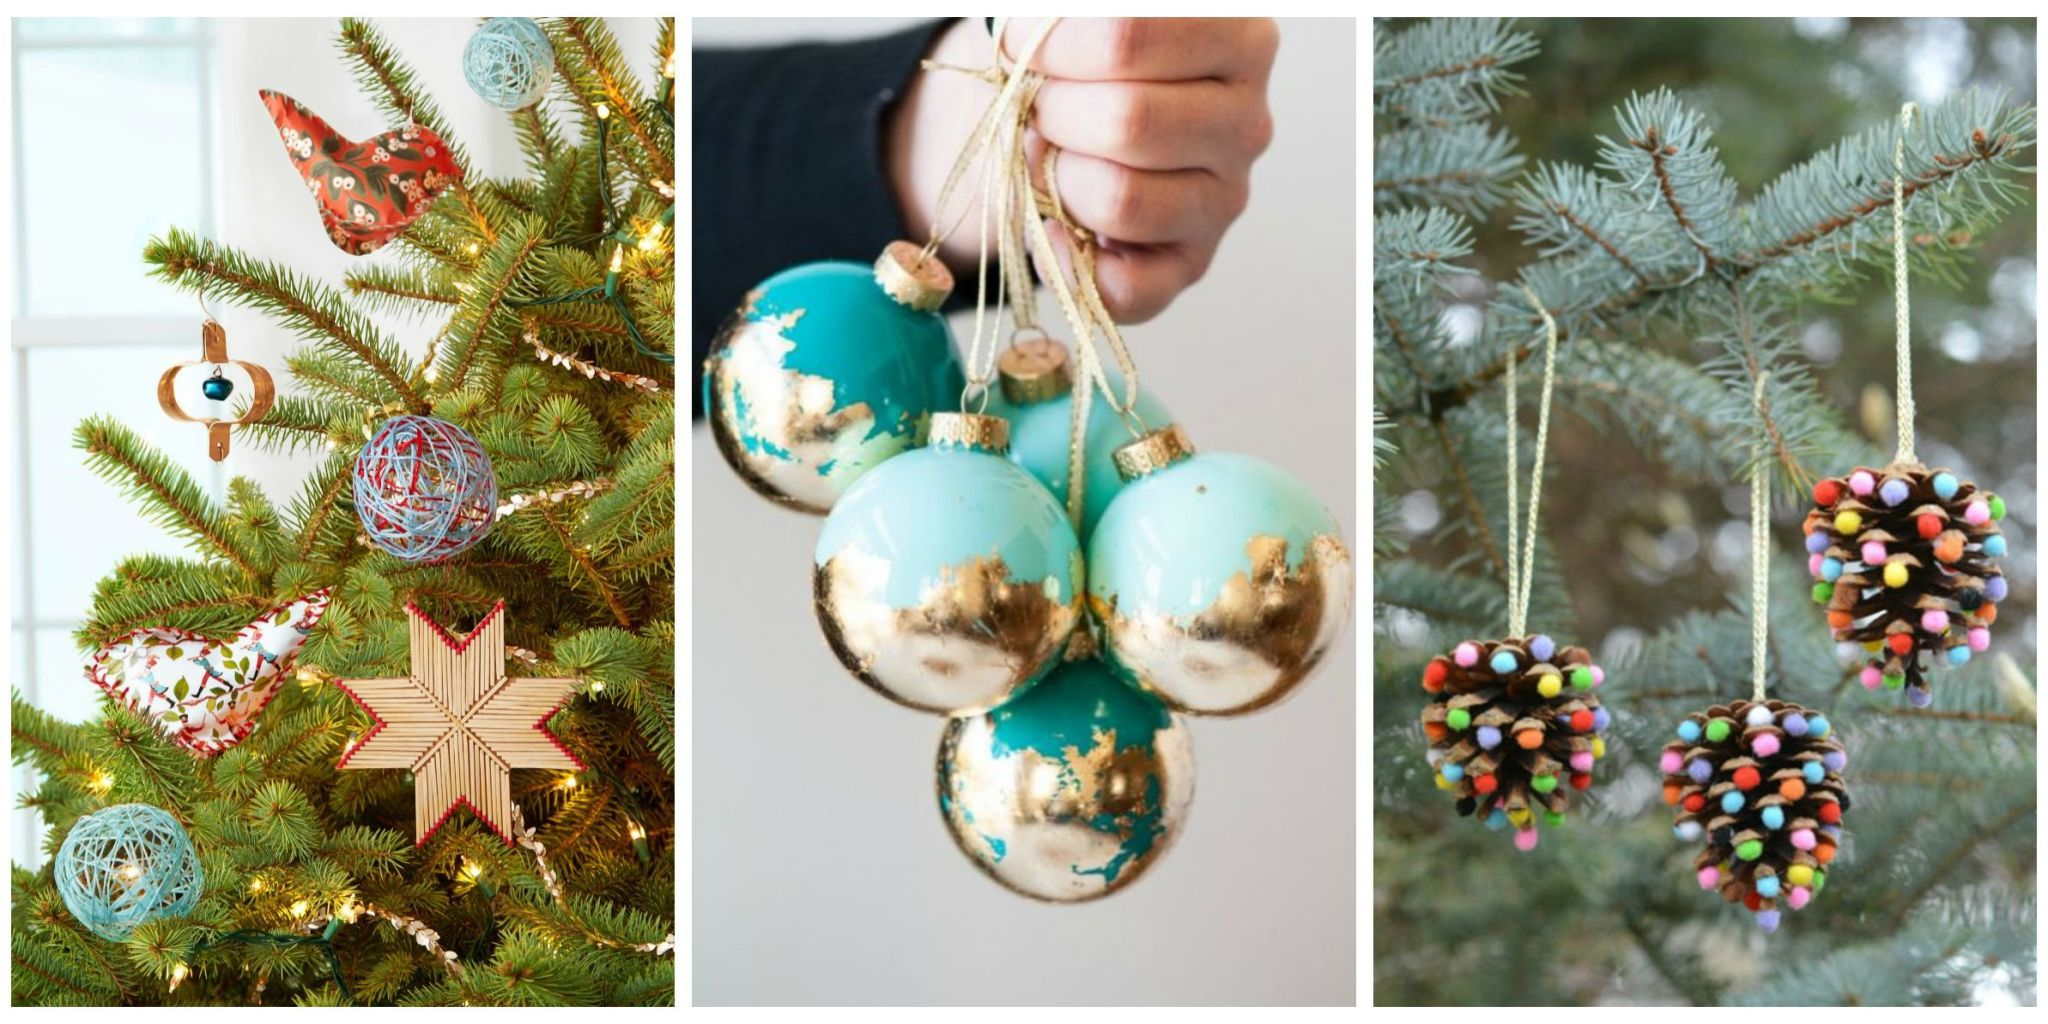 diy ideas for christmas decorations skip the store-bought decor, and get crafty this holiday season with these KHEFUGO